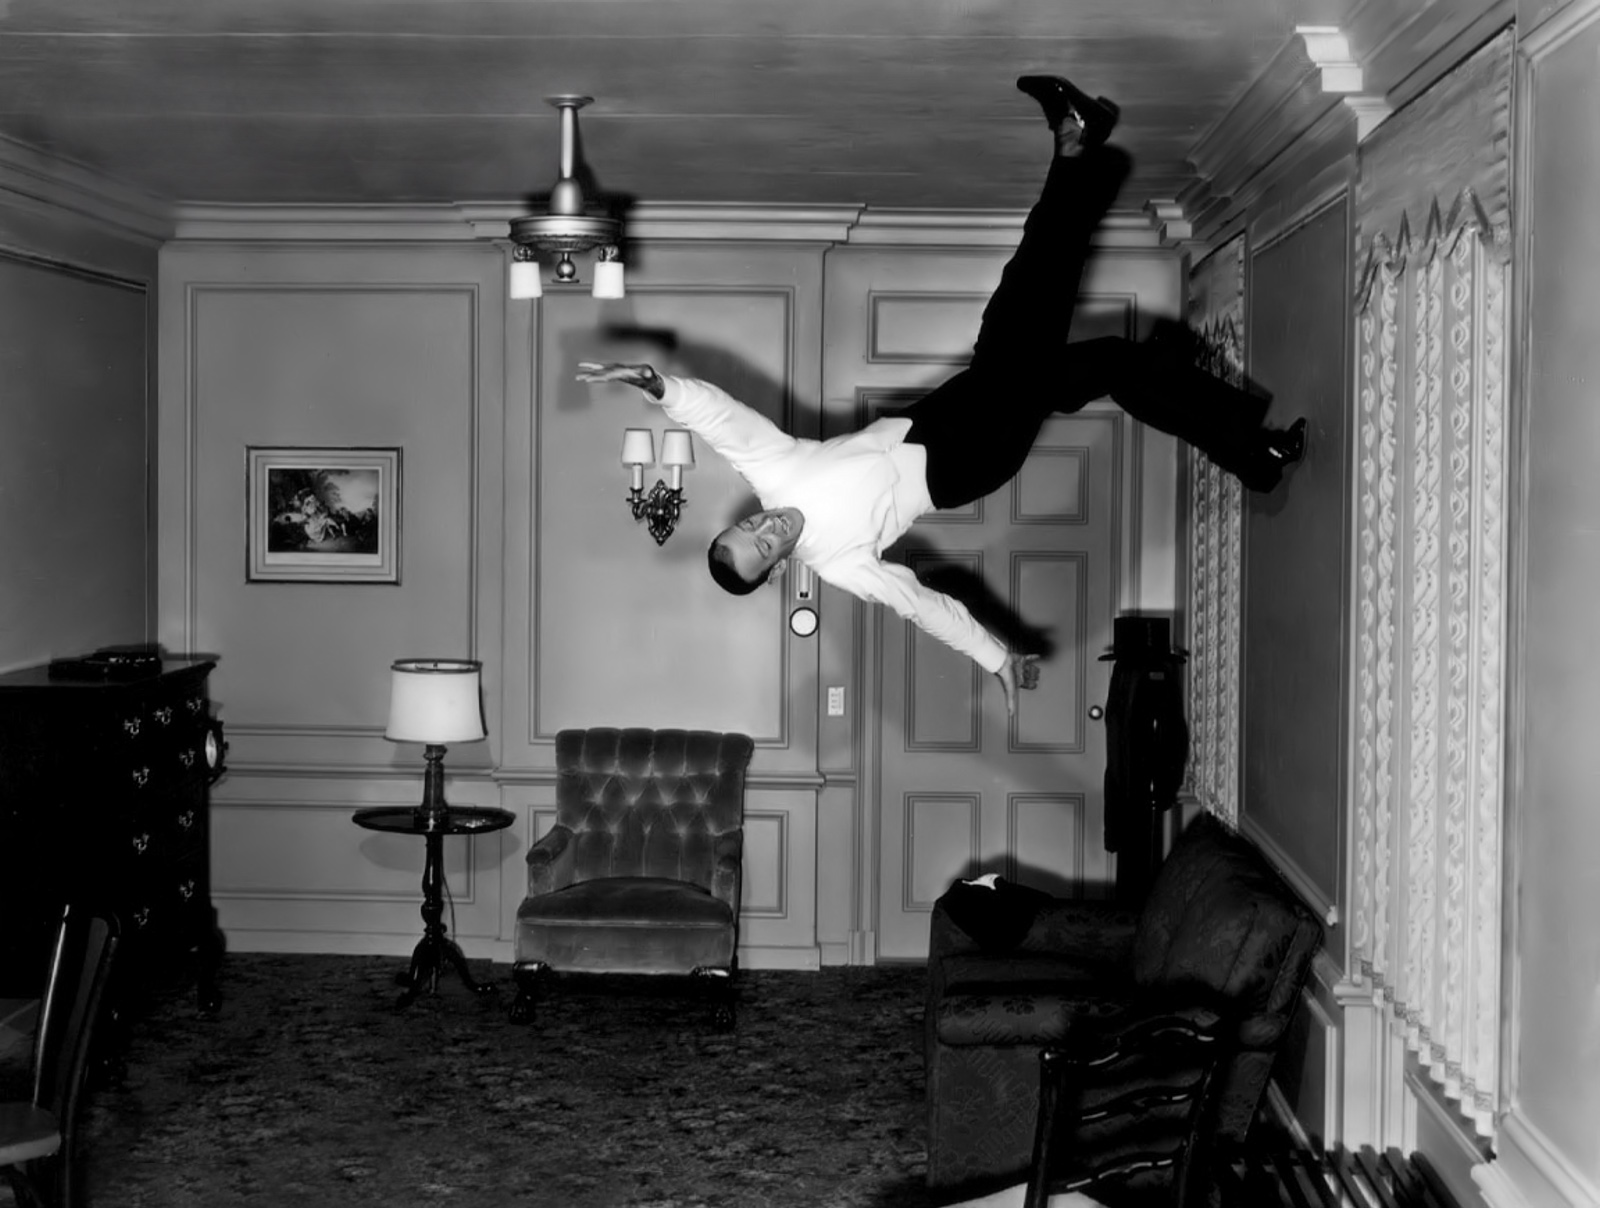 Movies cinema fred astaire gif on gifer by ironbinder.